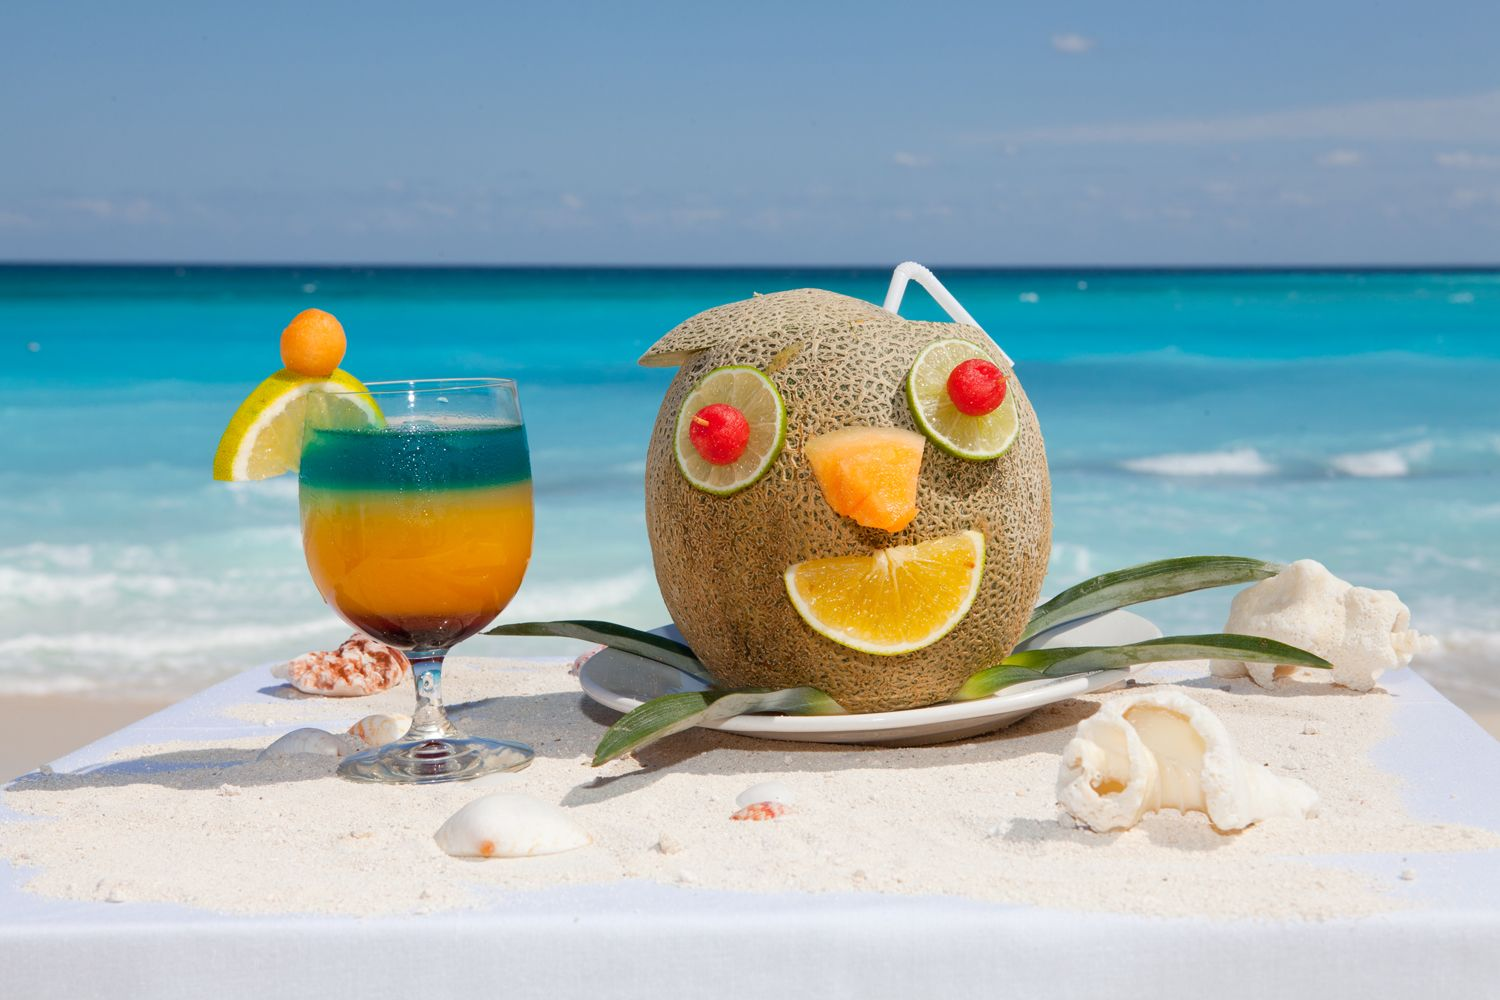 Caribbean Fun: Guacamaya Maya And Caribbean Melon! Yummy Drinks And Fun